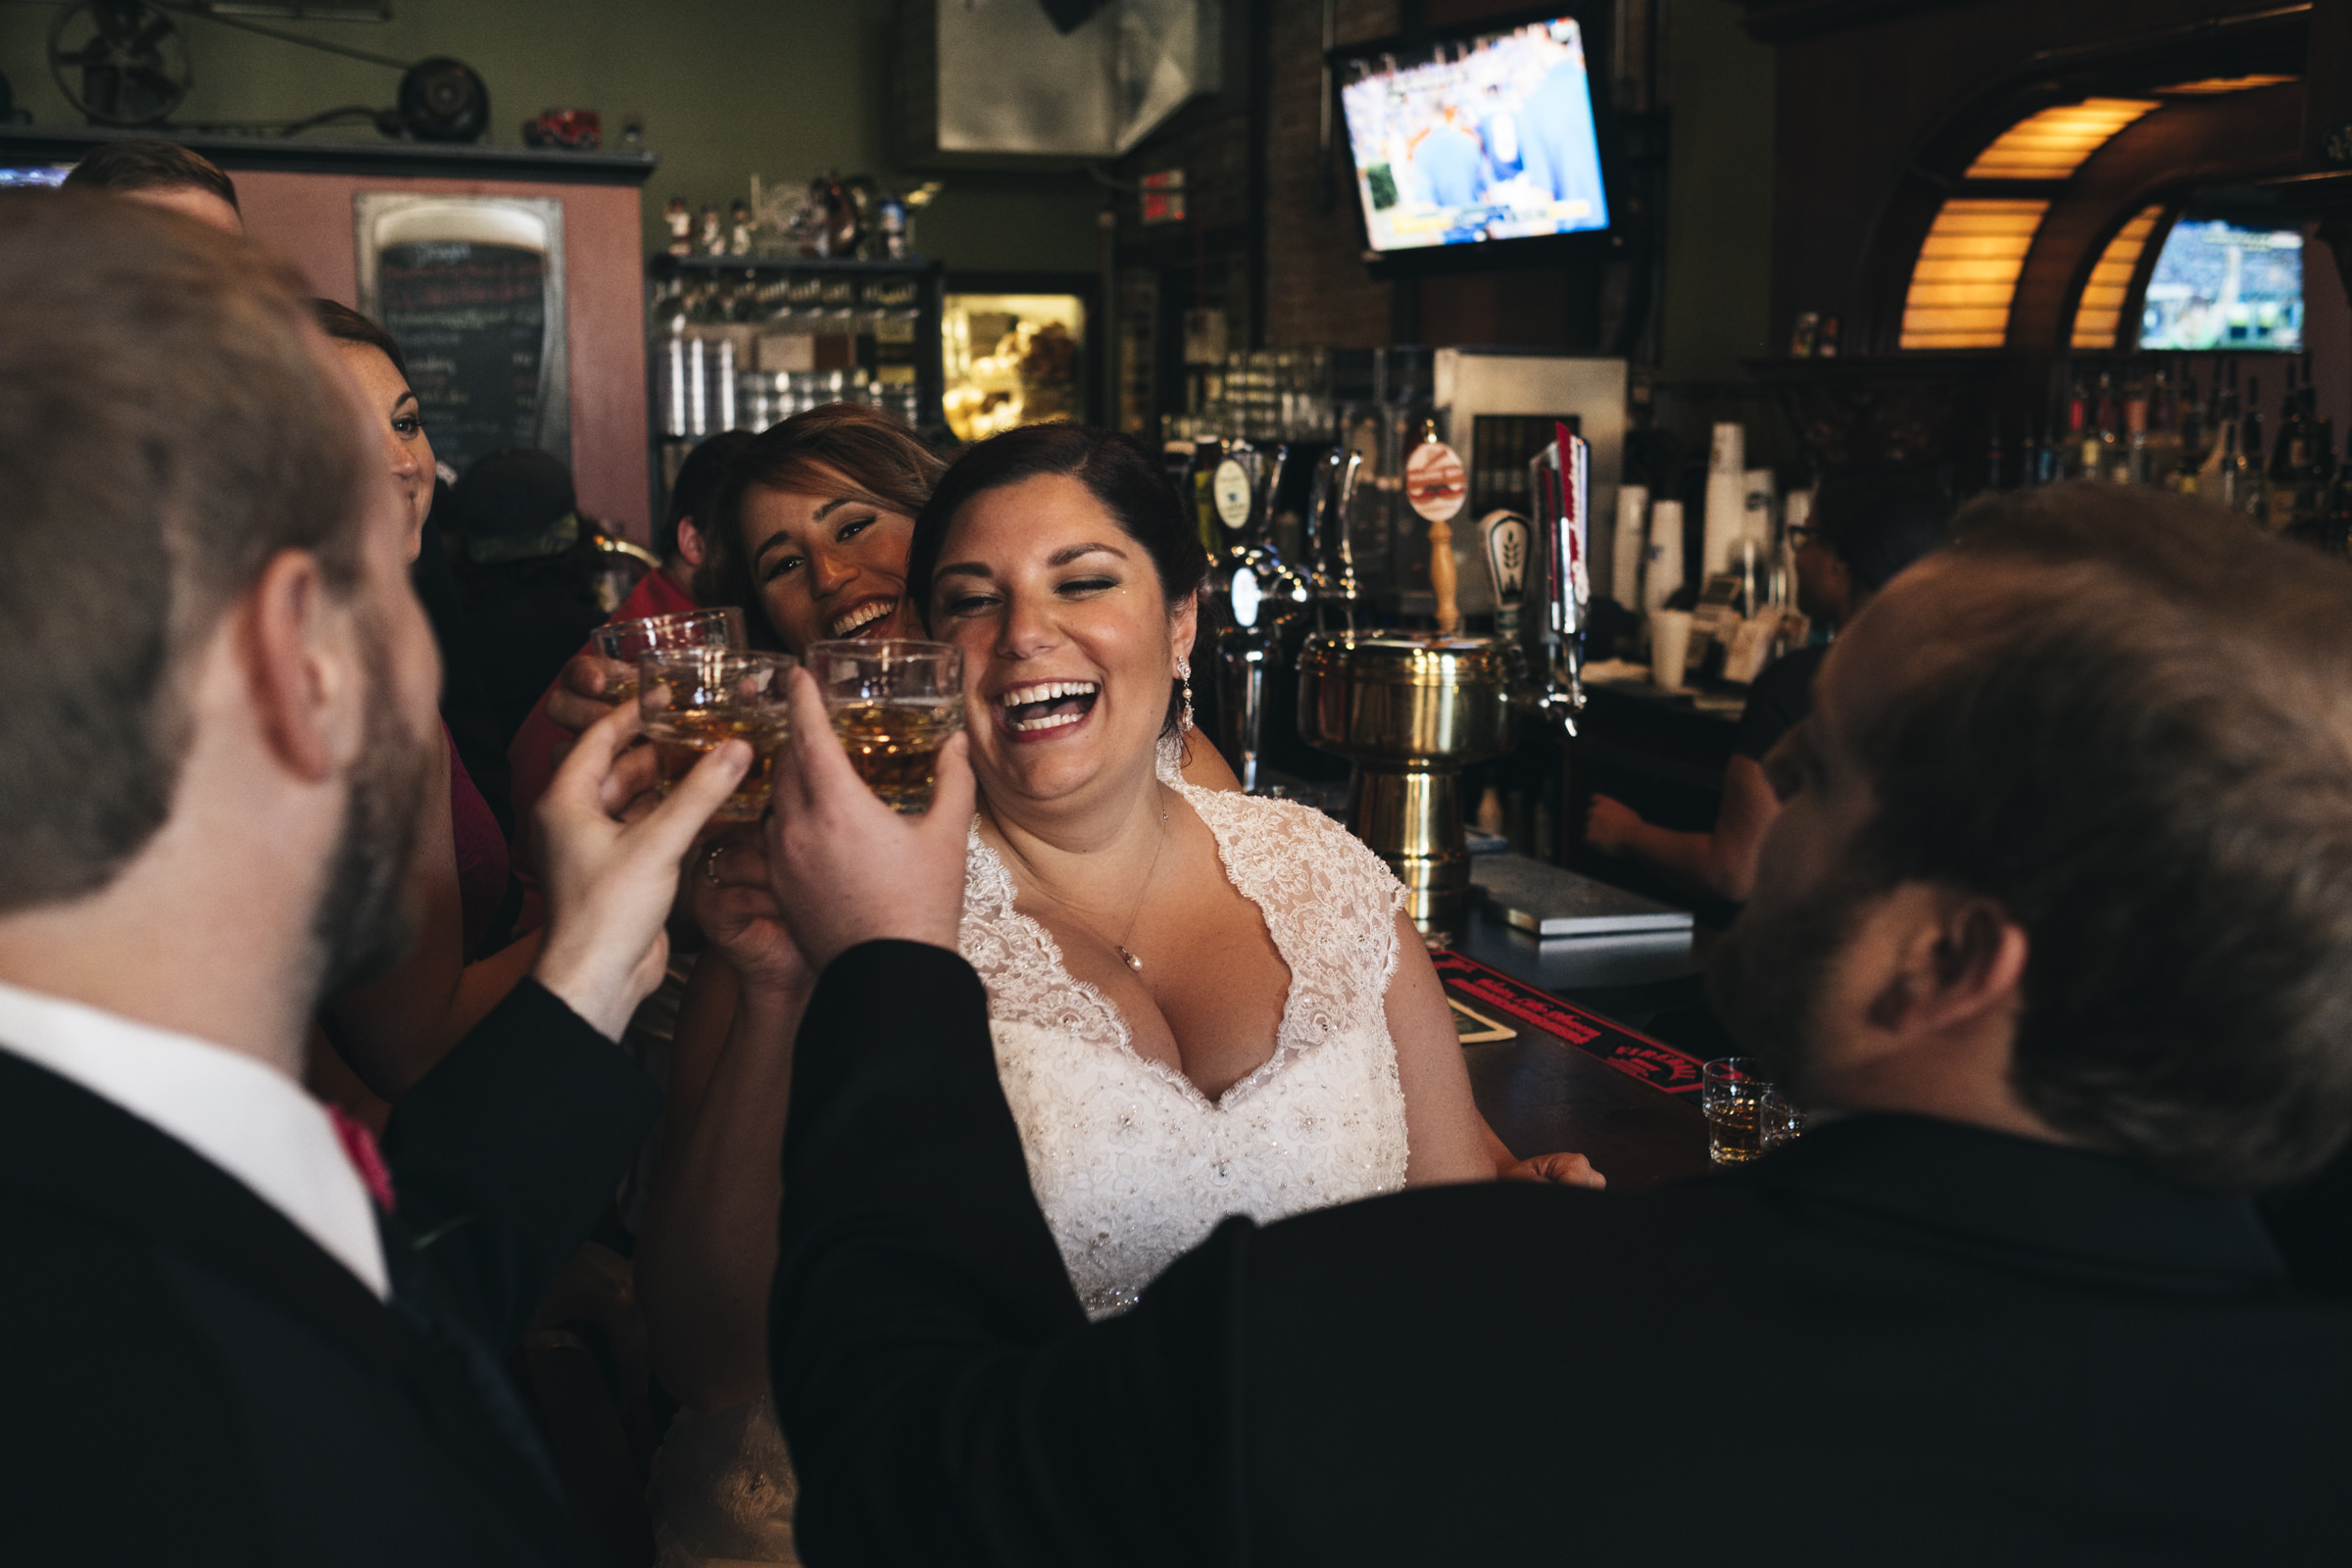 The bride and groom visit The Blarney in downtown Toledo for a drink before their wedding reception